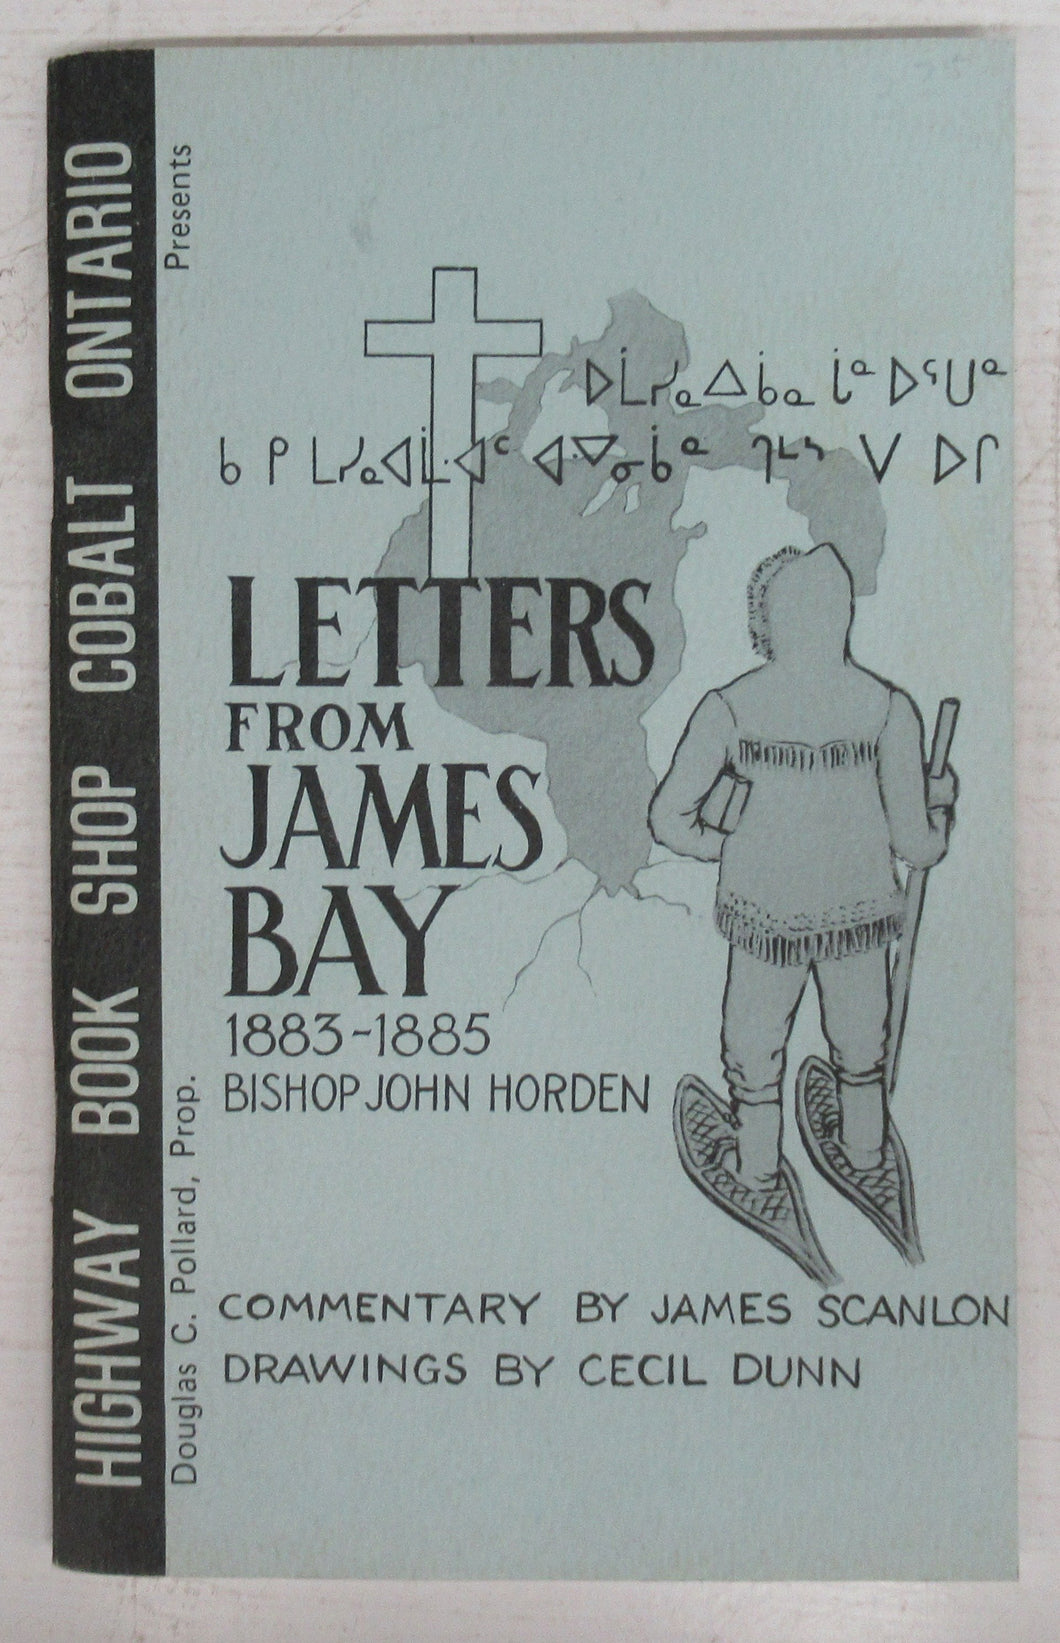 Letters From James Bay 1883-1885